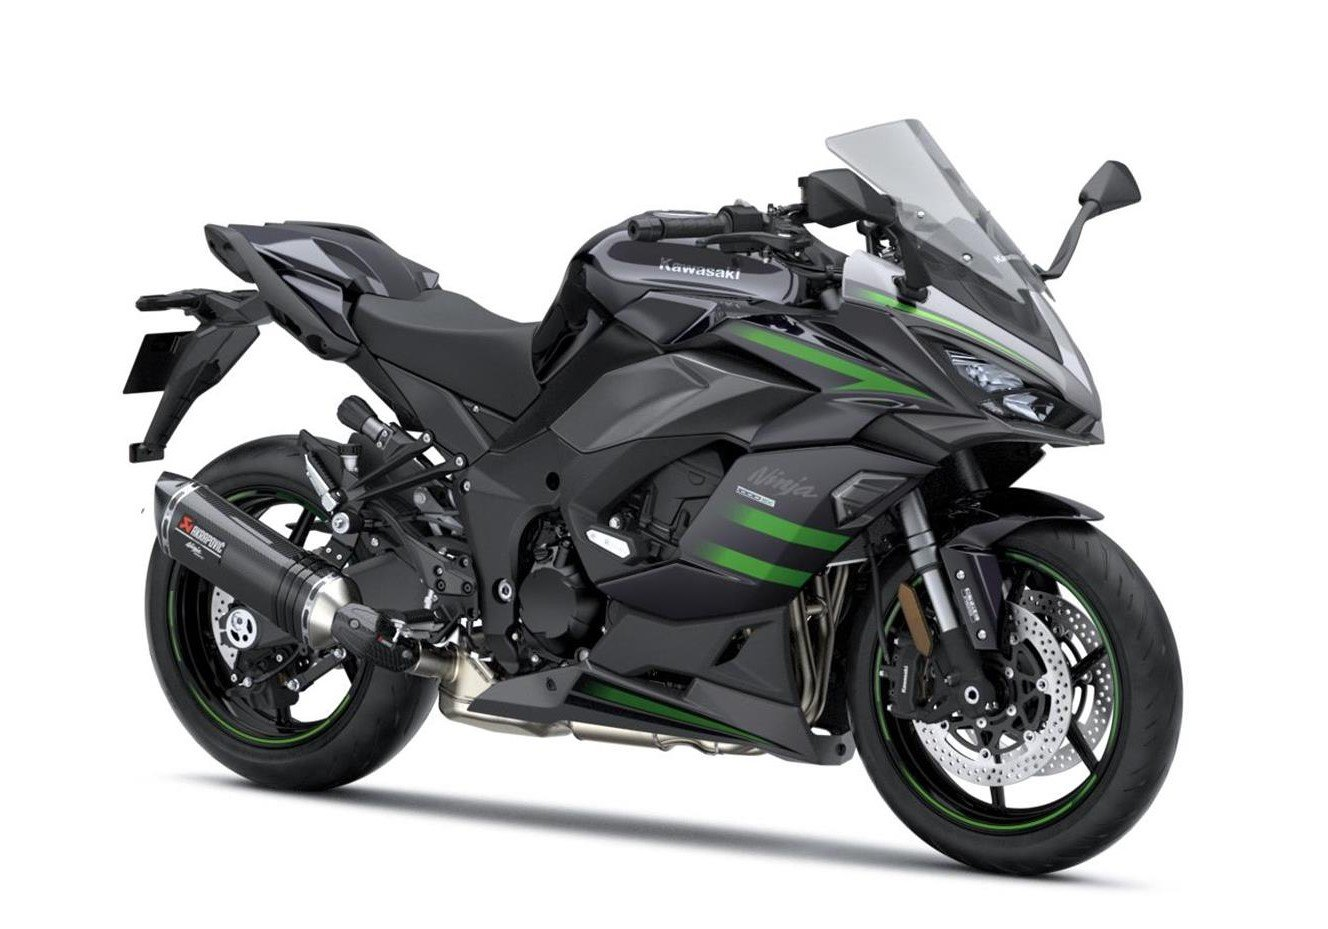 New 2020 Kawasaki Ninja 1000 SX SE Performance*FREE Delivery For Sale (picture 1 of 6)